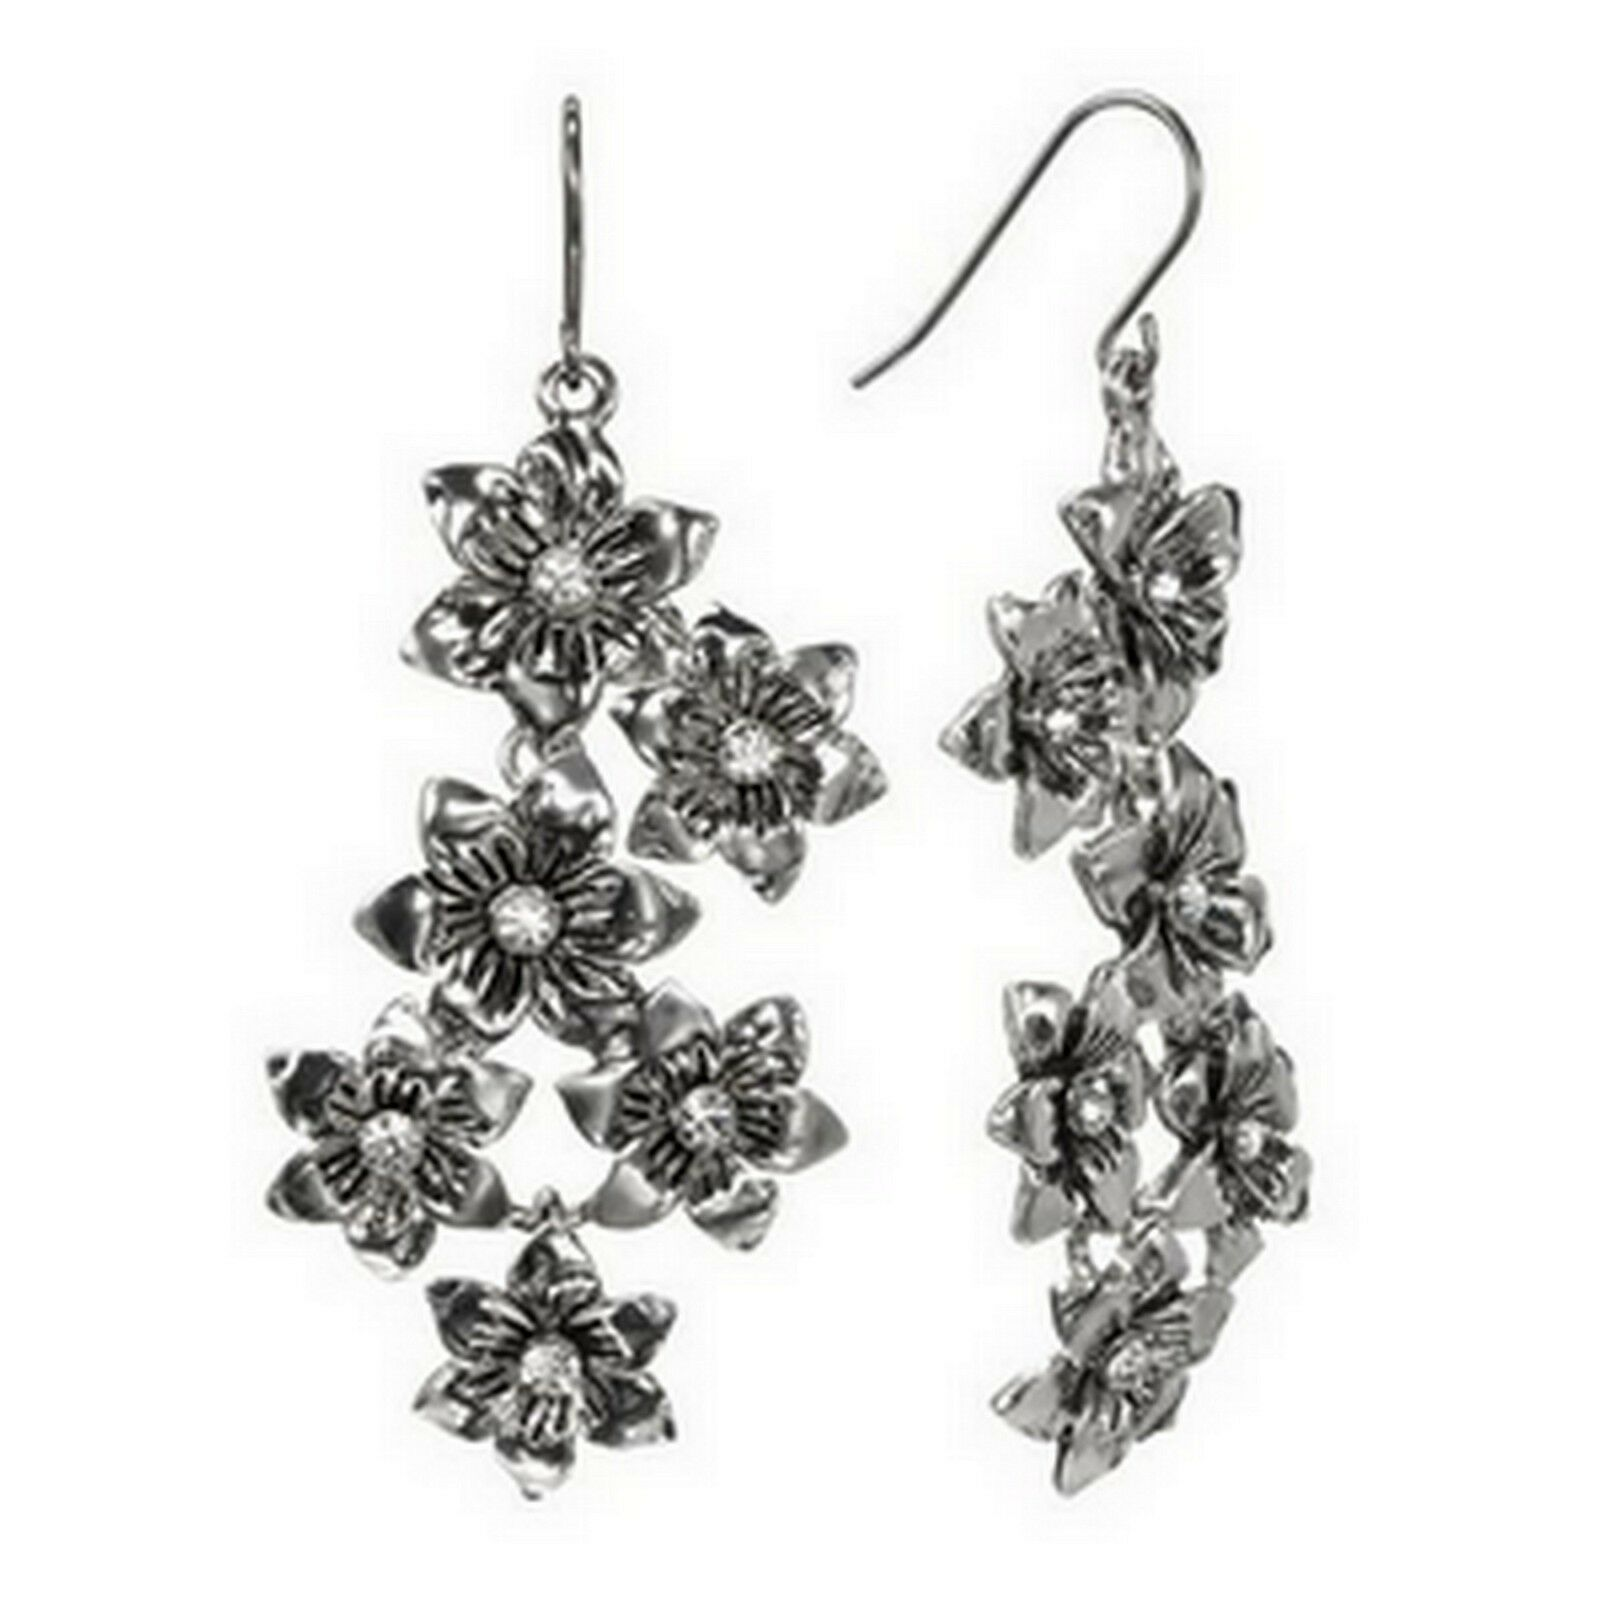 Primary image for Trifari Silver Tone Simulated Crystal Flower Floral Drop Stud Earrings